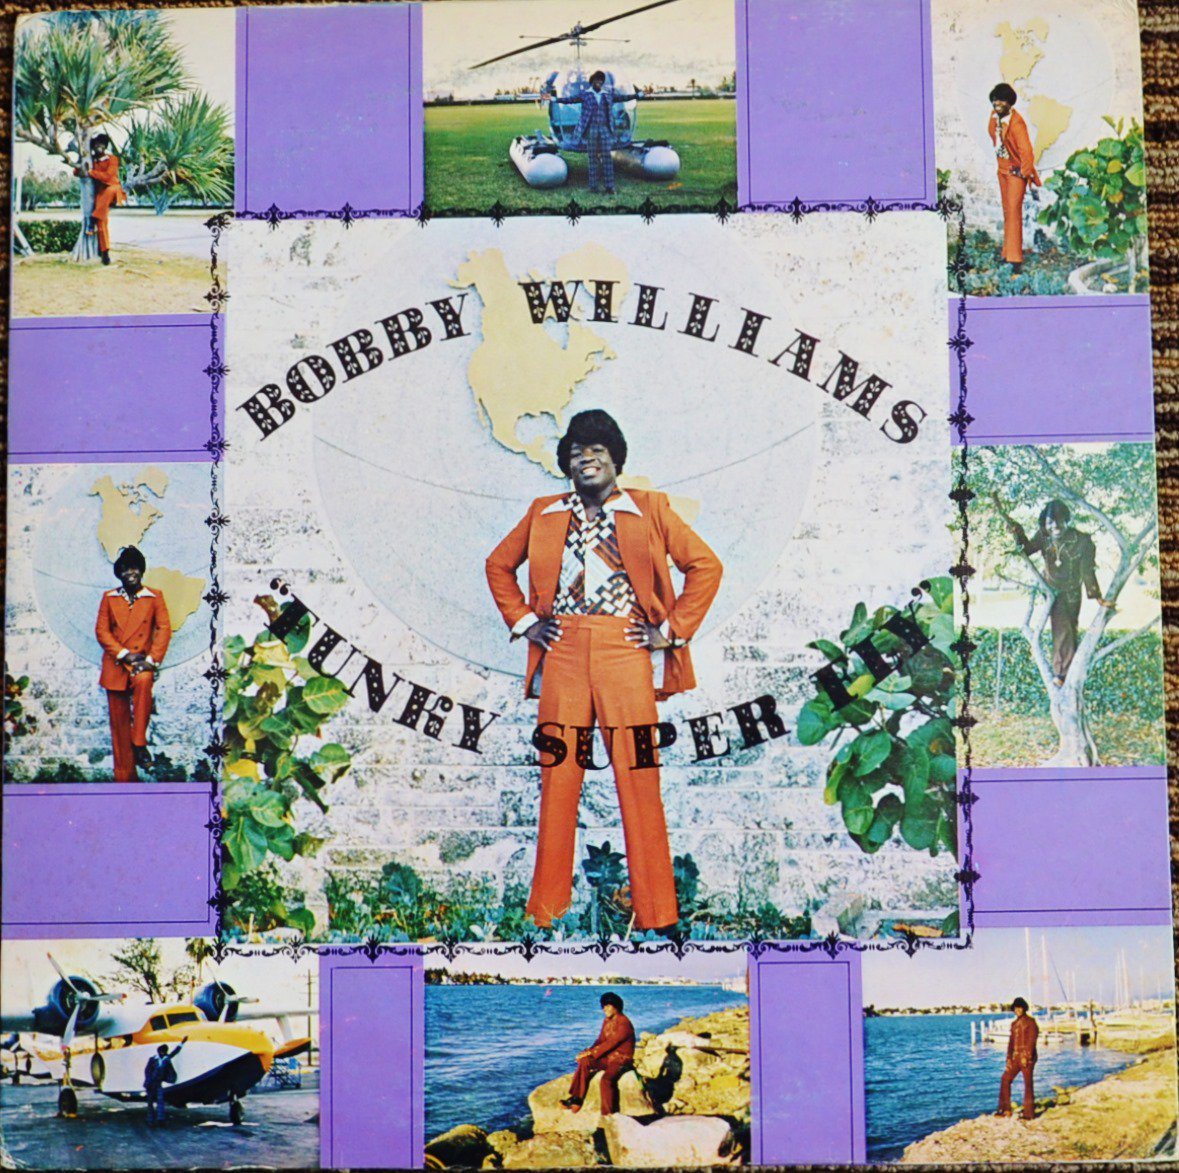 BOBBY WILLIAMS ‎/ FUNKY SUPER FLY (LP)